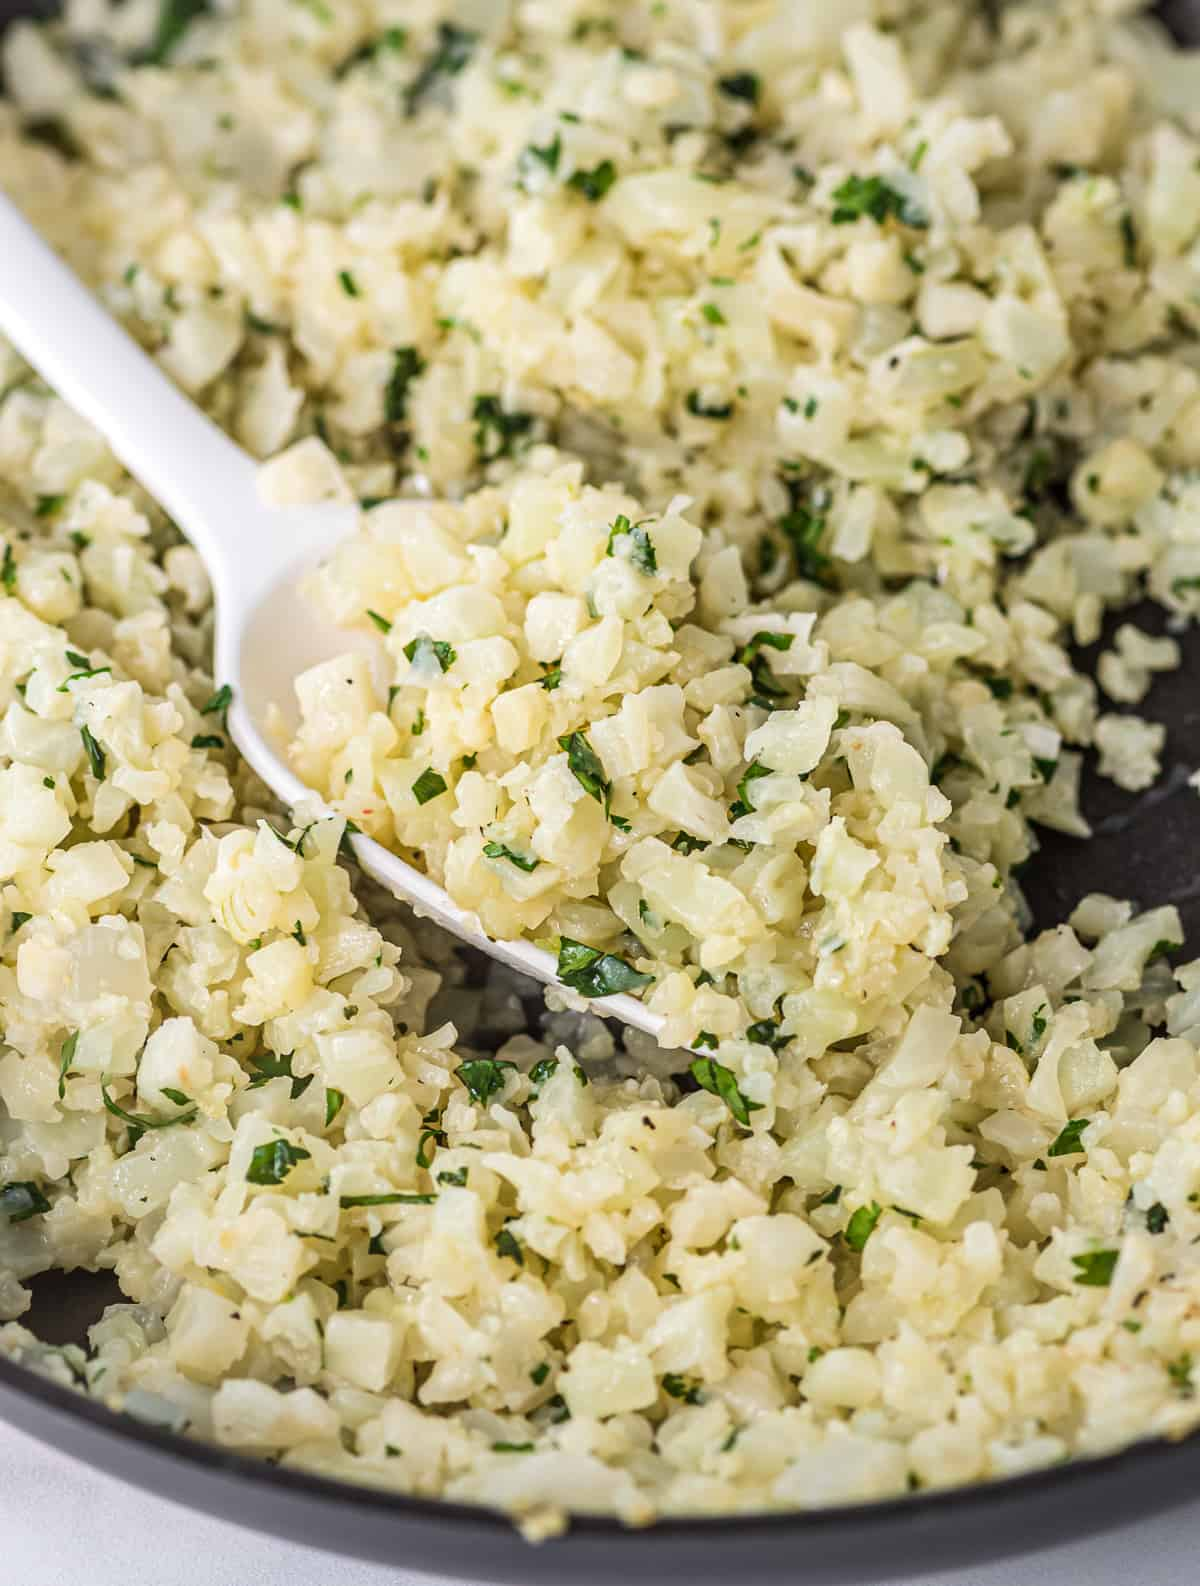 a white spoon taking a scoop of cauliflower rice from the skillet